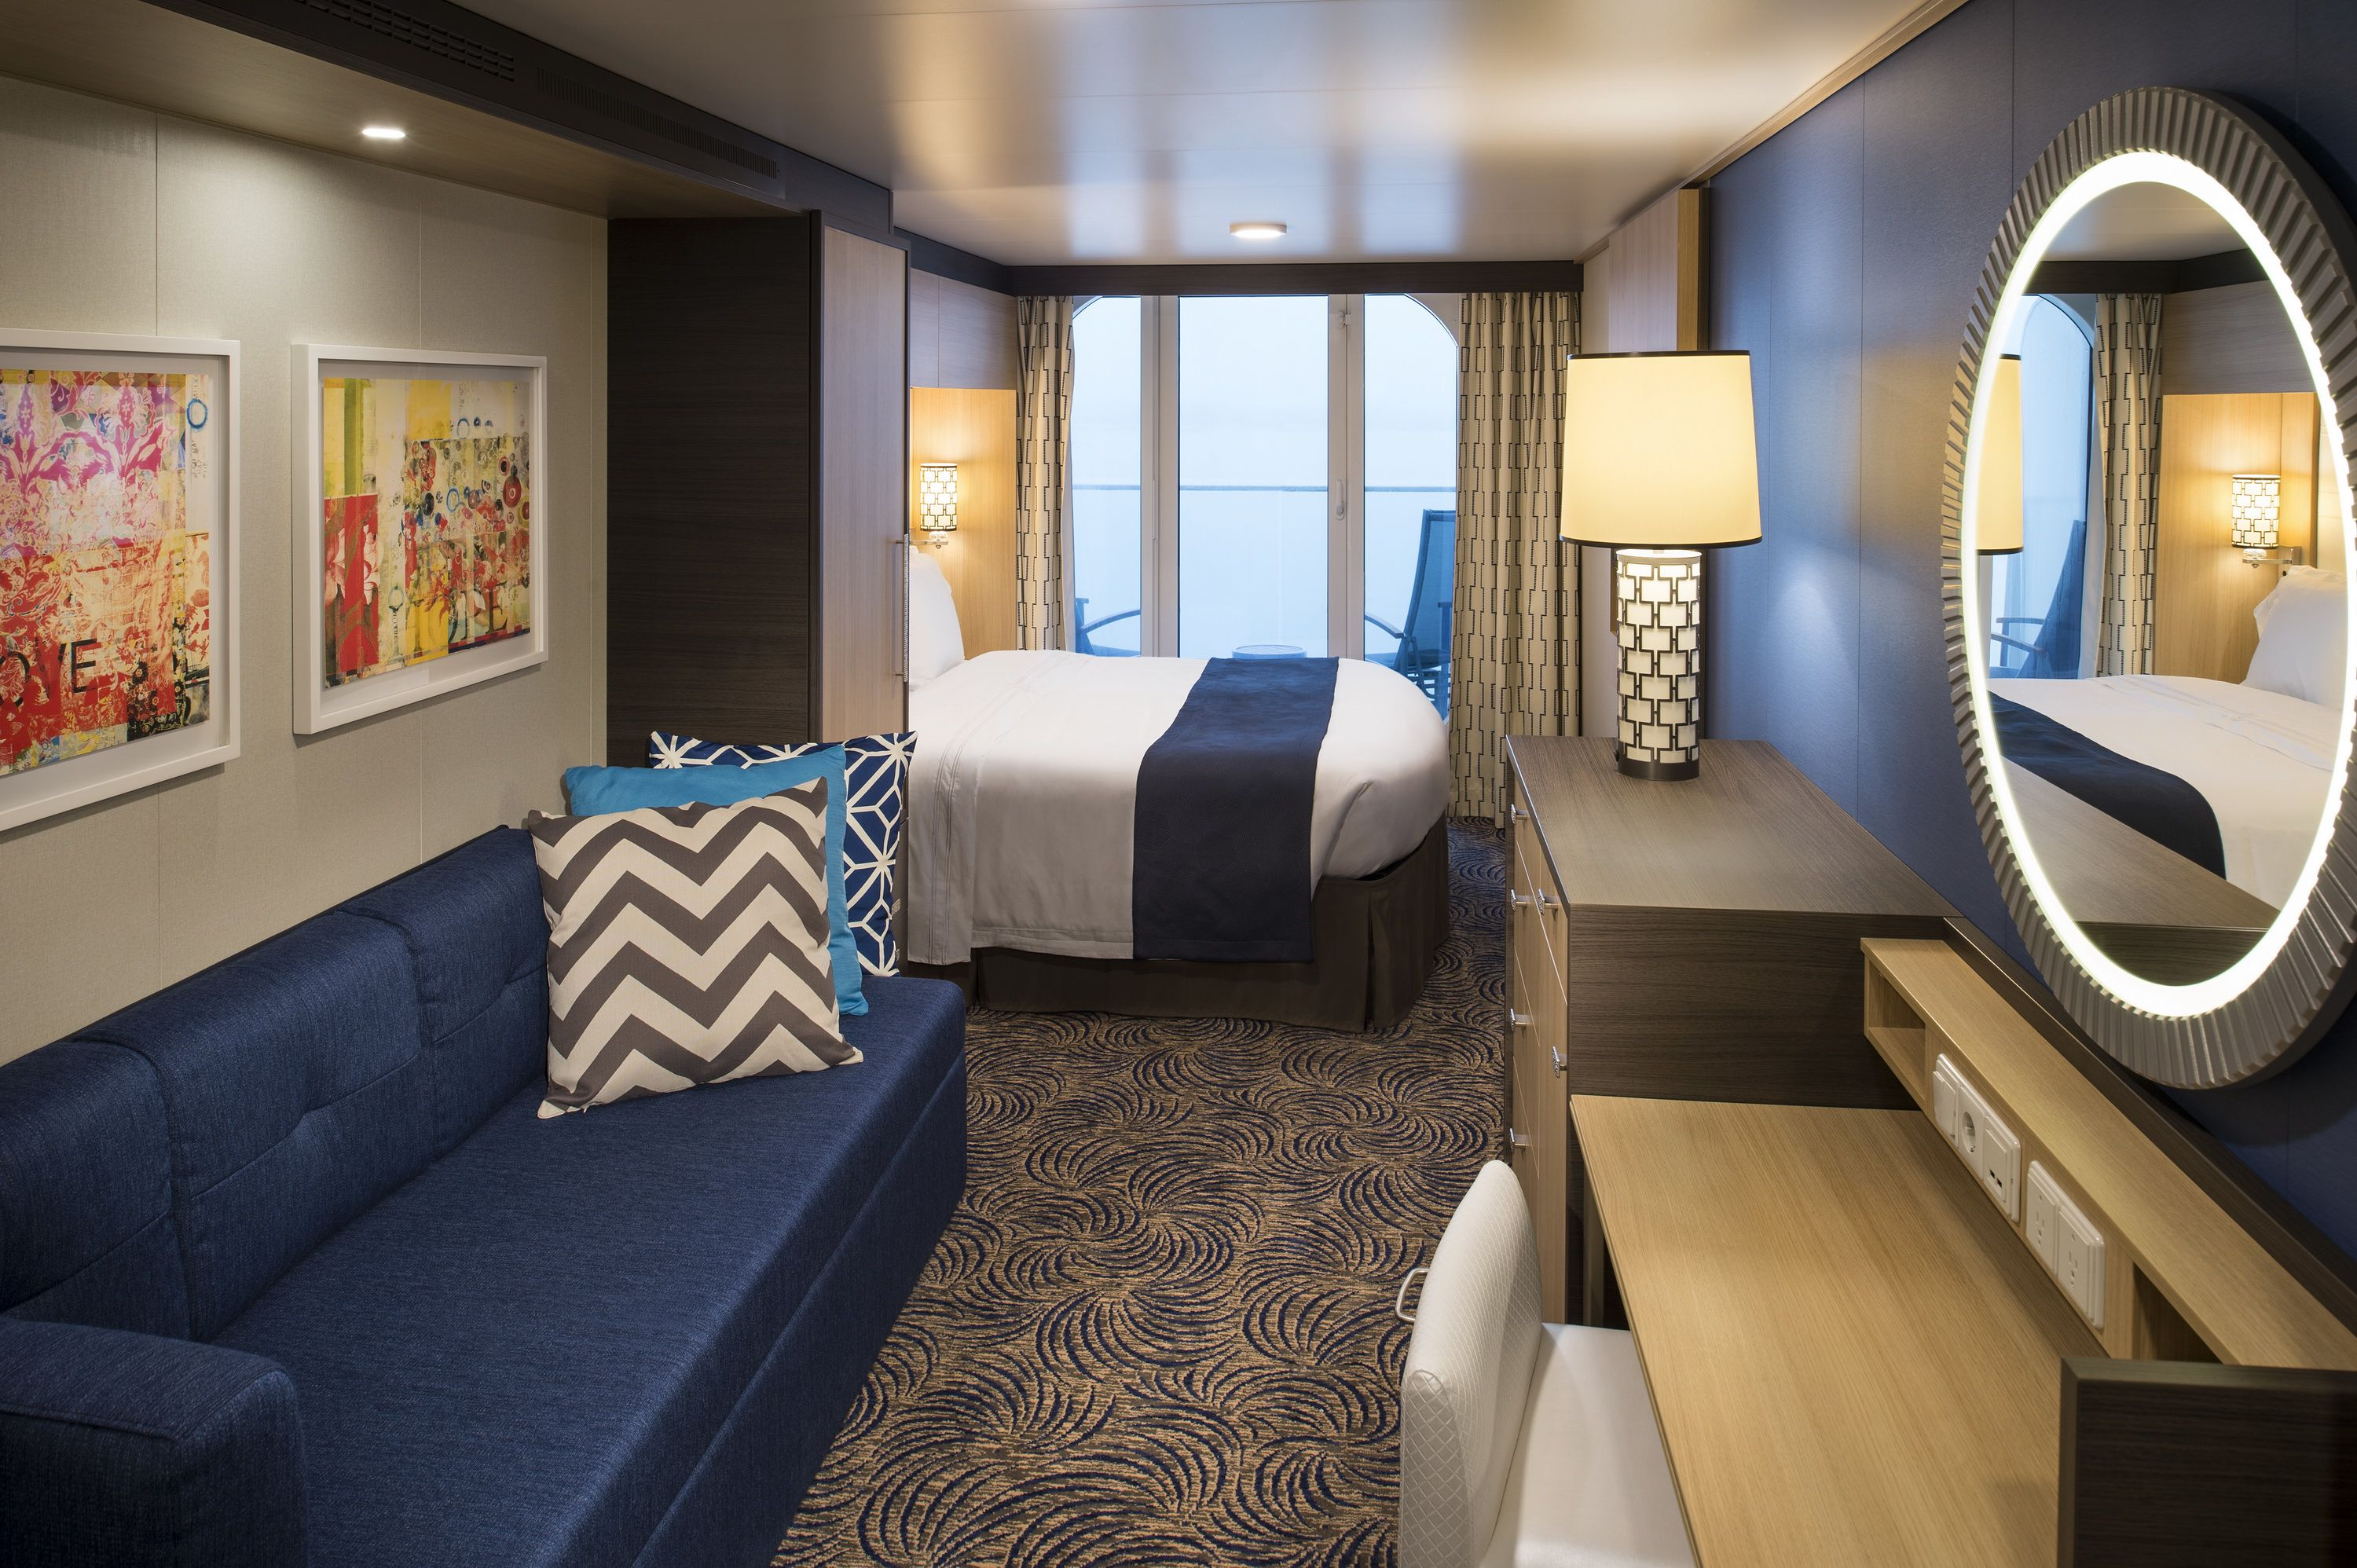 Superior Ocean View Cabin with Balcony on the Anthem of the Seas